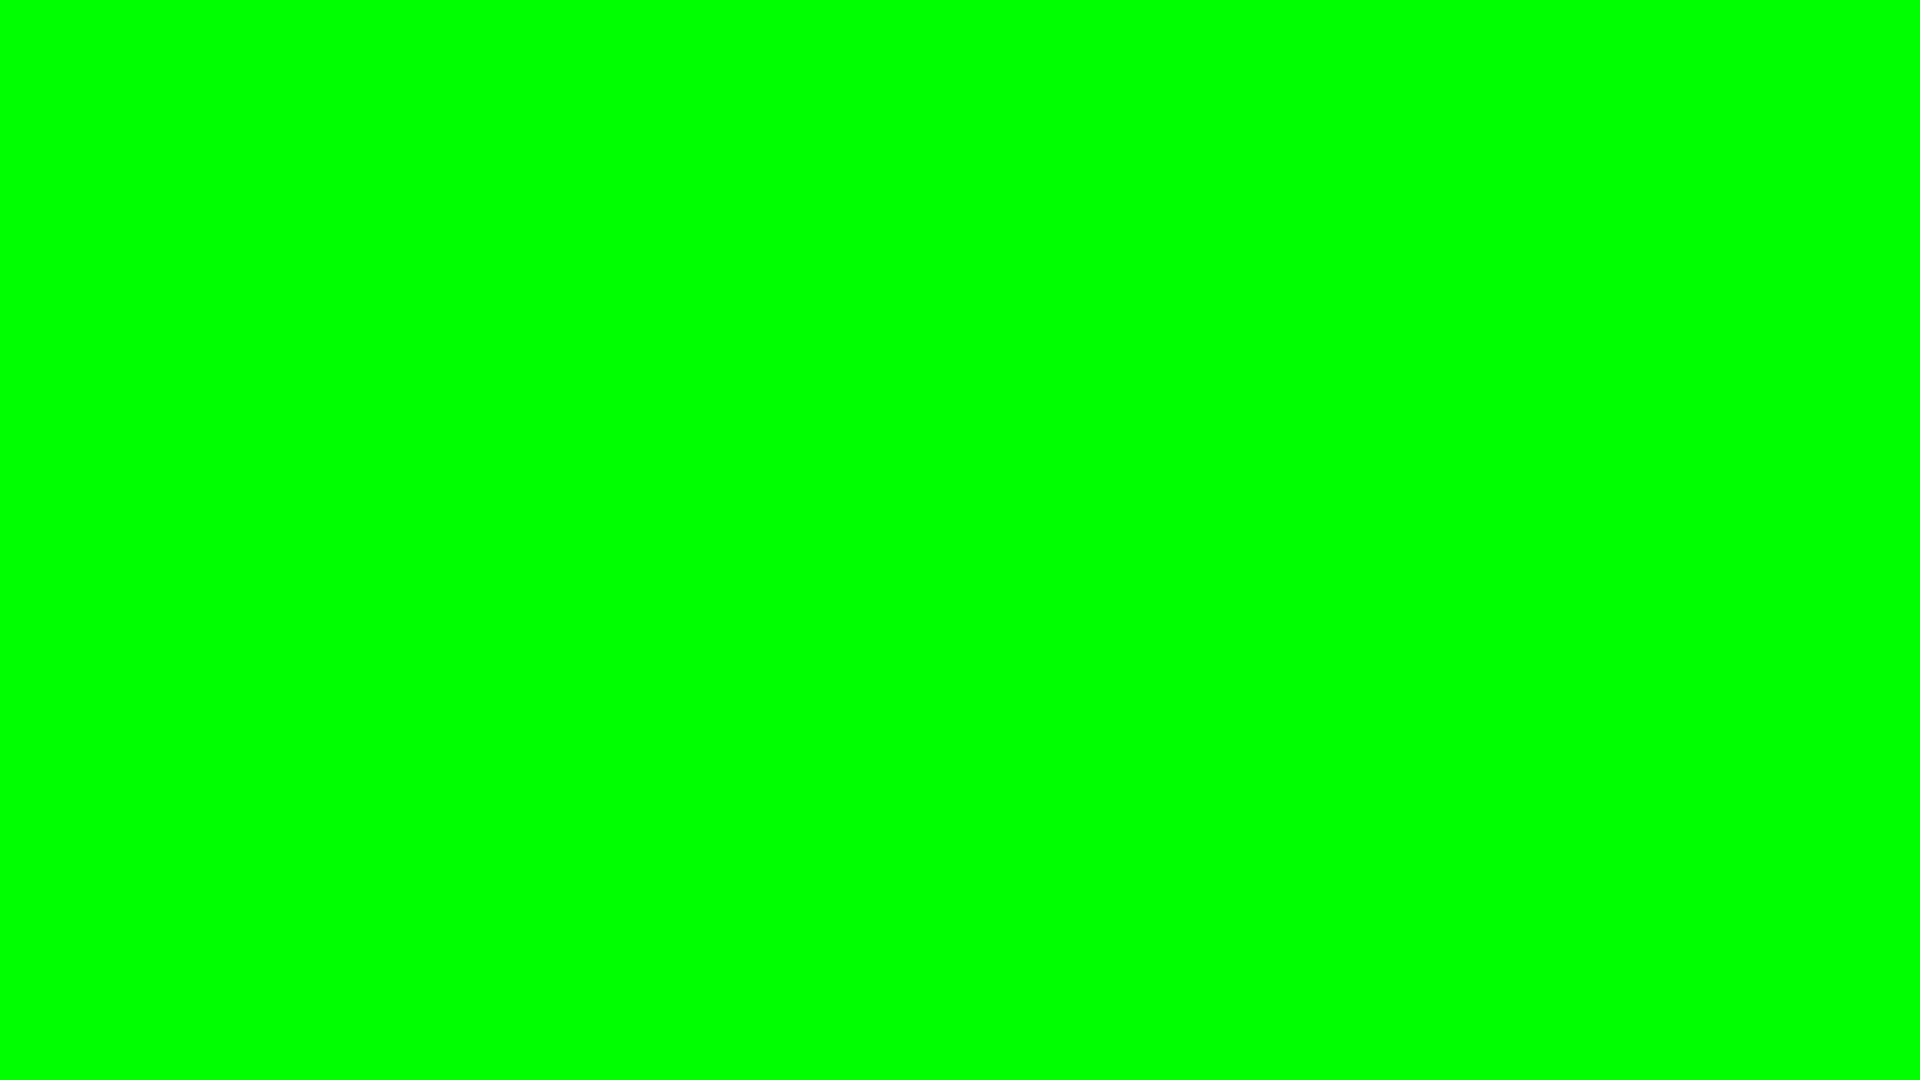 1920x1080 Green X11 Gui Green Solid Color Background